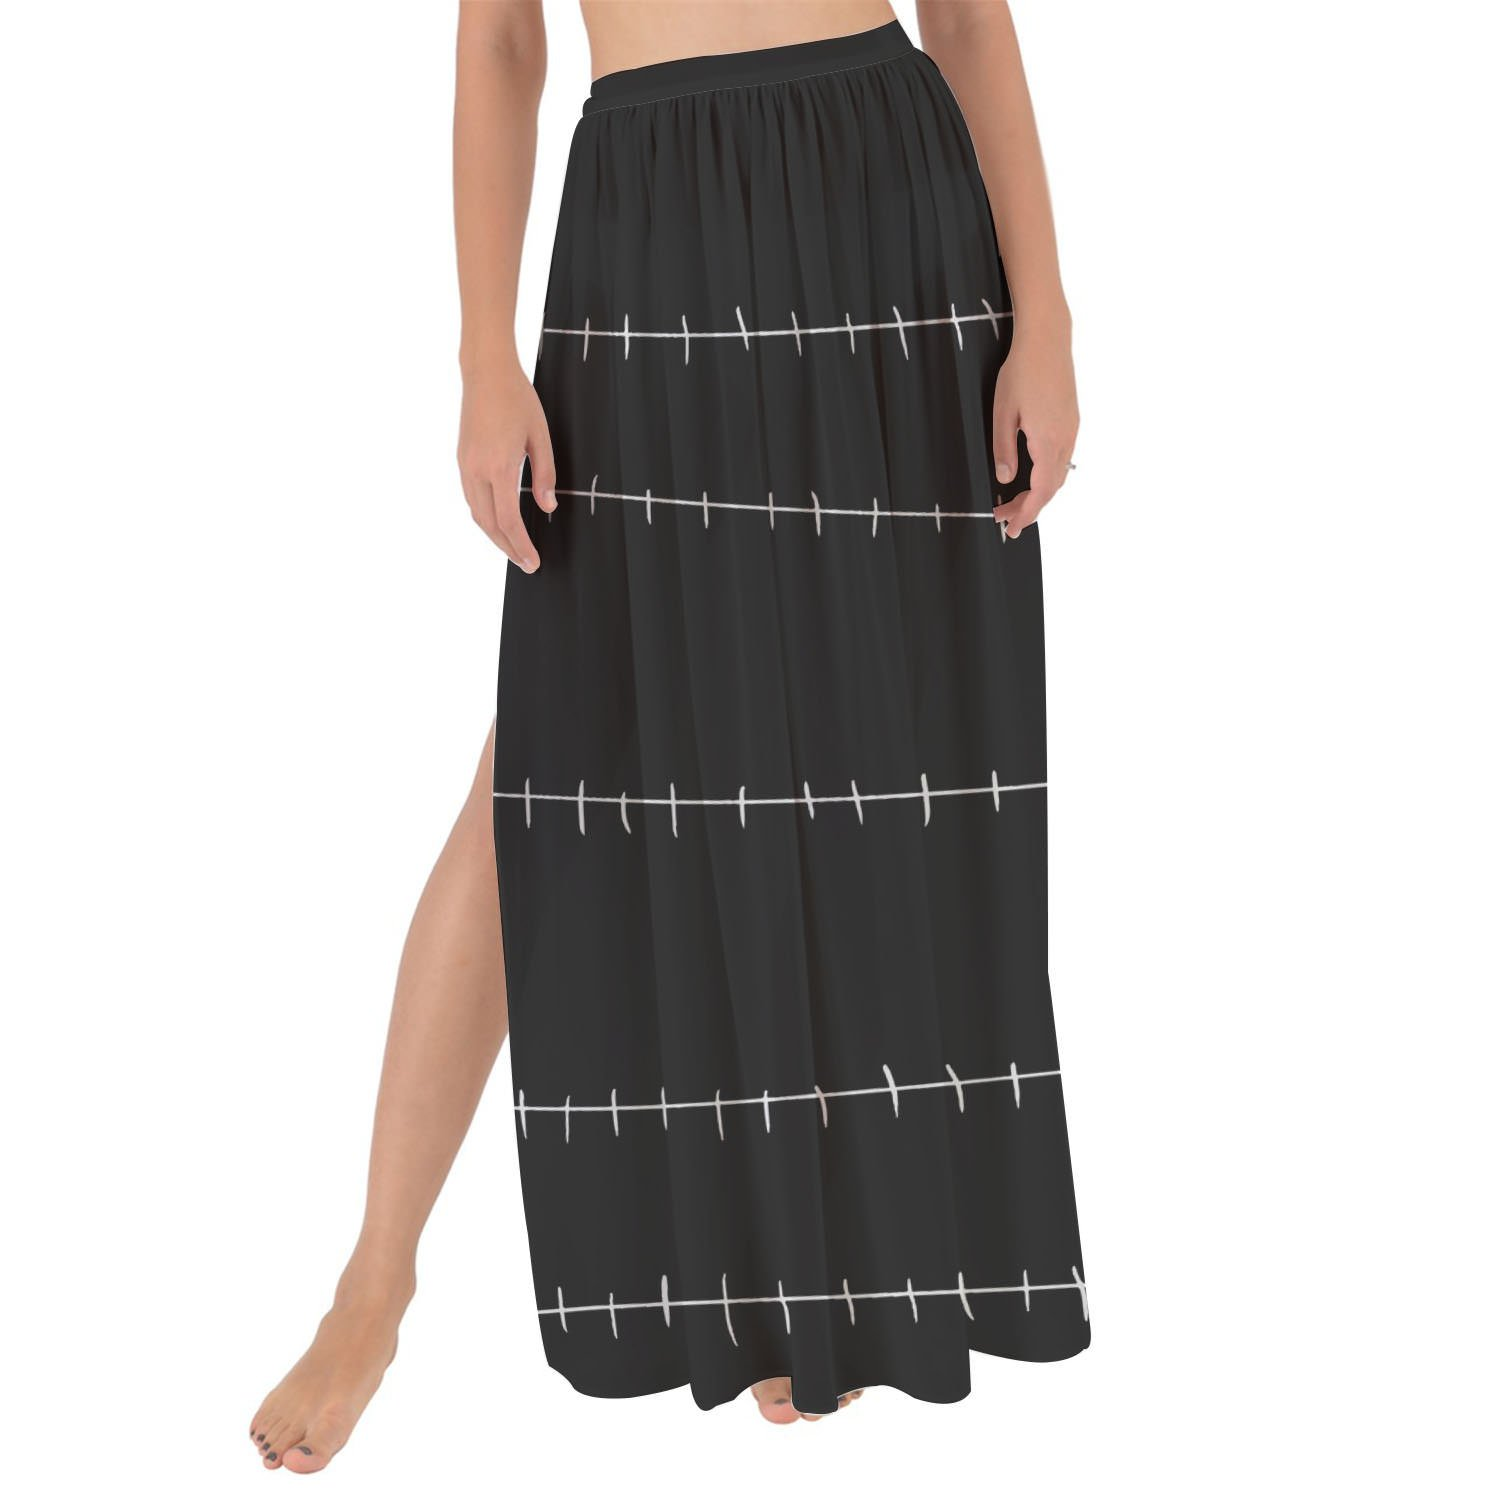 Queen of Cases Stitches Jack Skellington Inspired Maxi Sarong Skirt